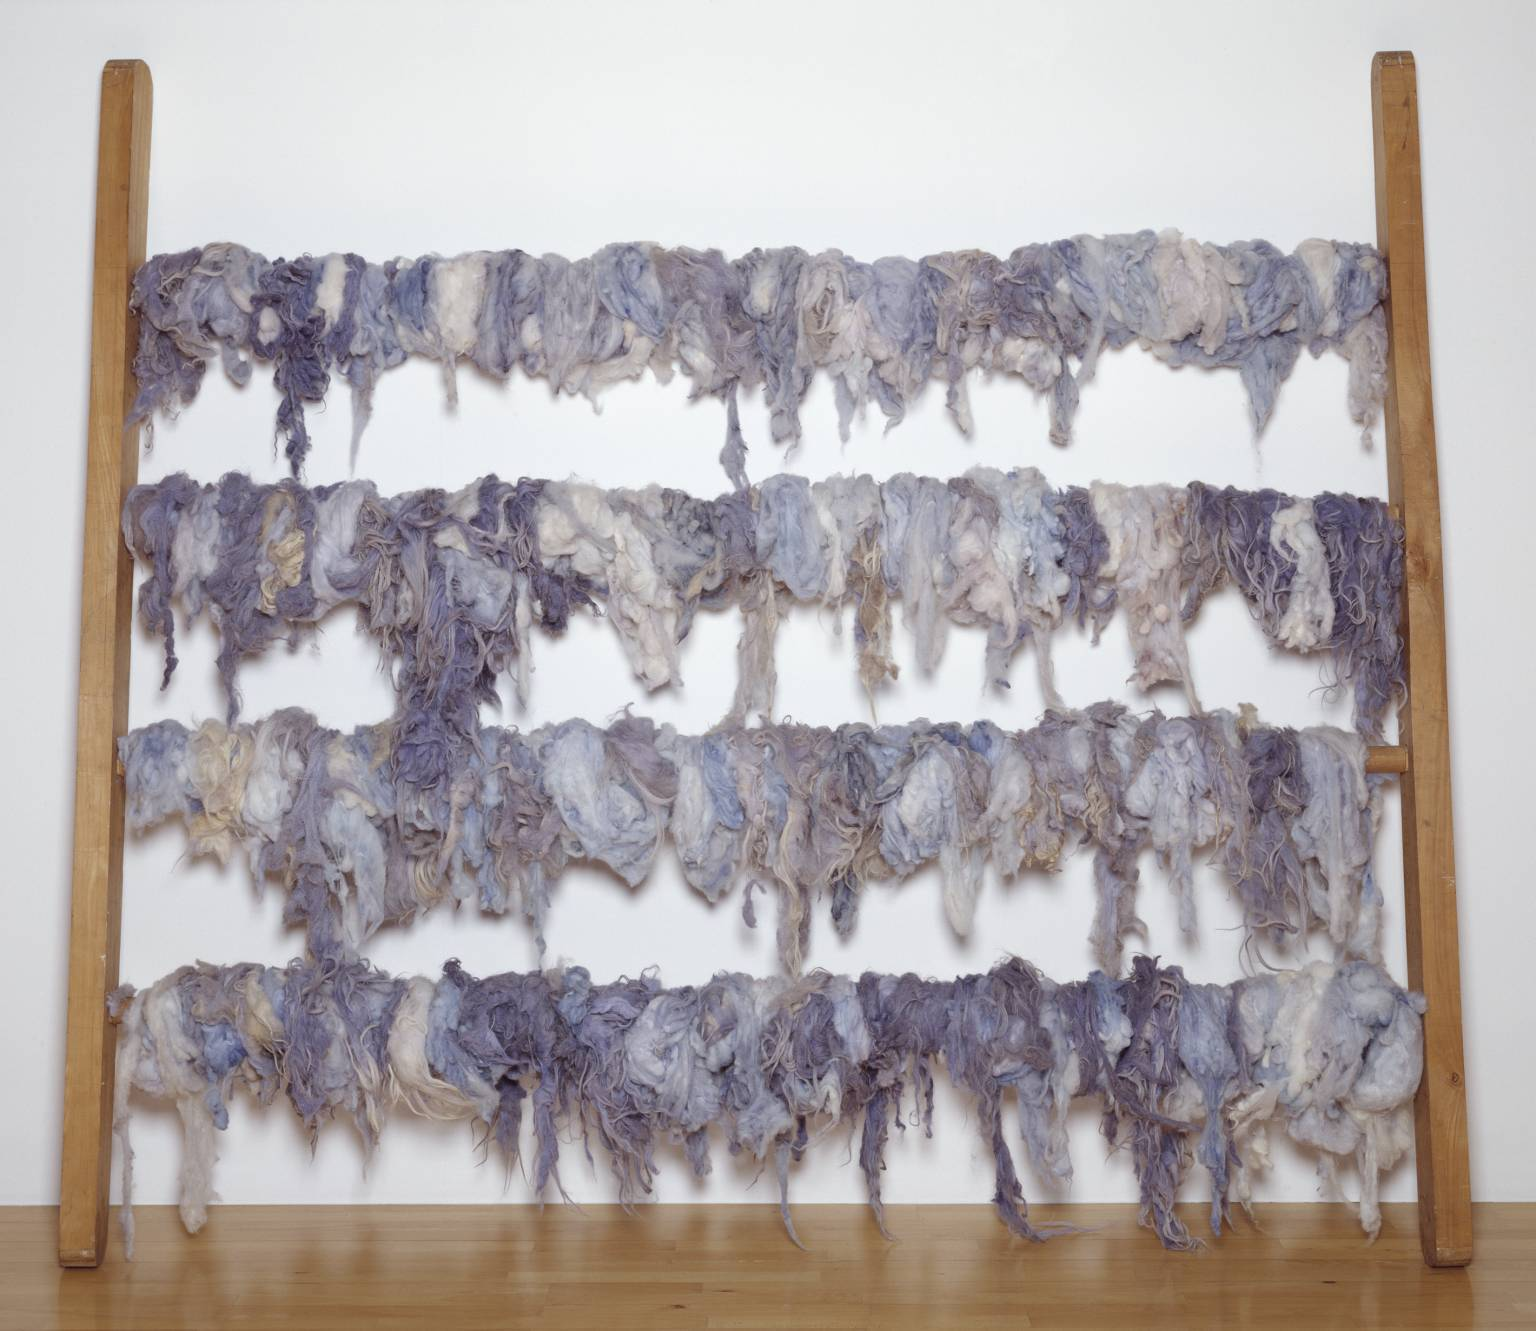 Untitled 1968 Jannis Kounellis born 1936 Purchased 1996 http://www.tate.org.uk/art/work/T07074